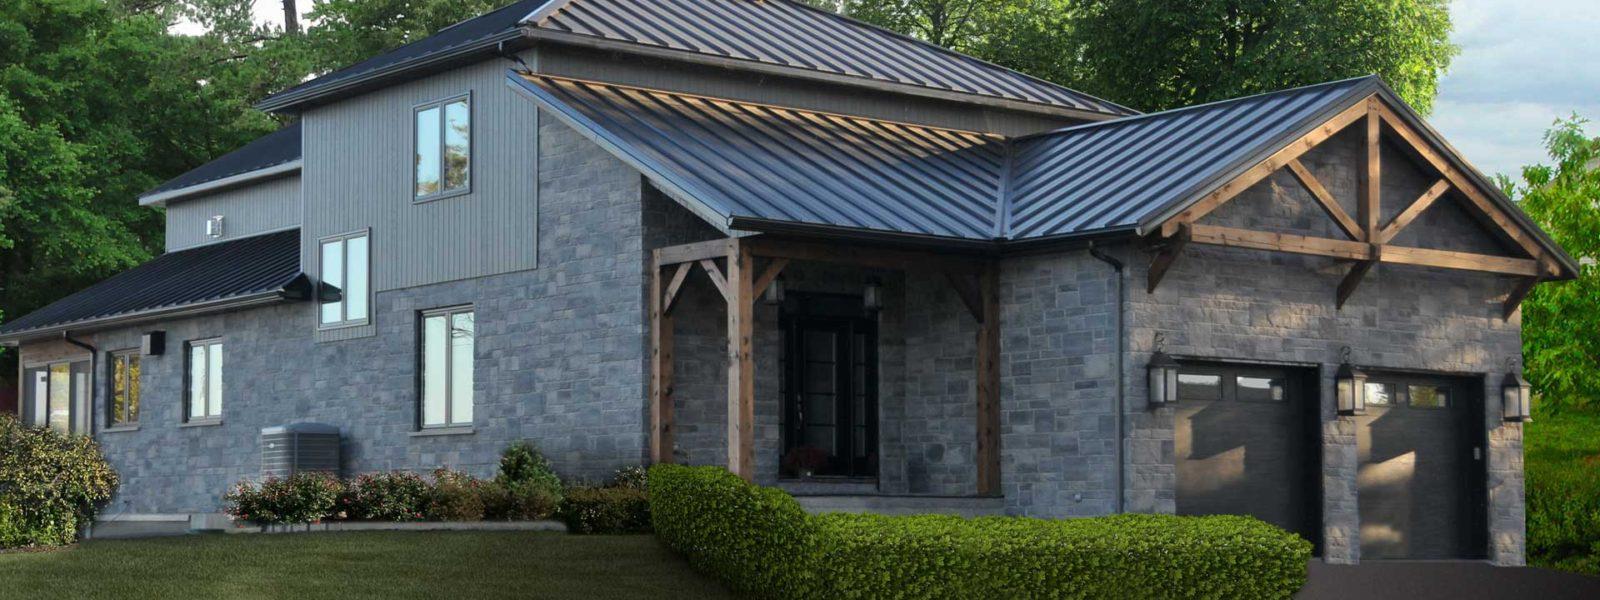 Pros and Cons of Metal Roofs